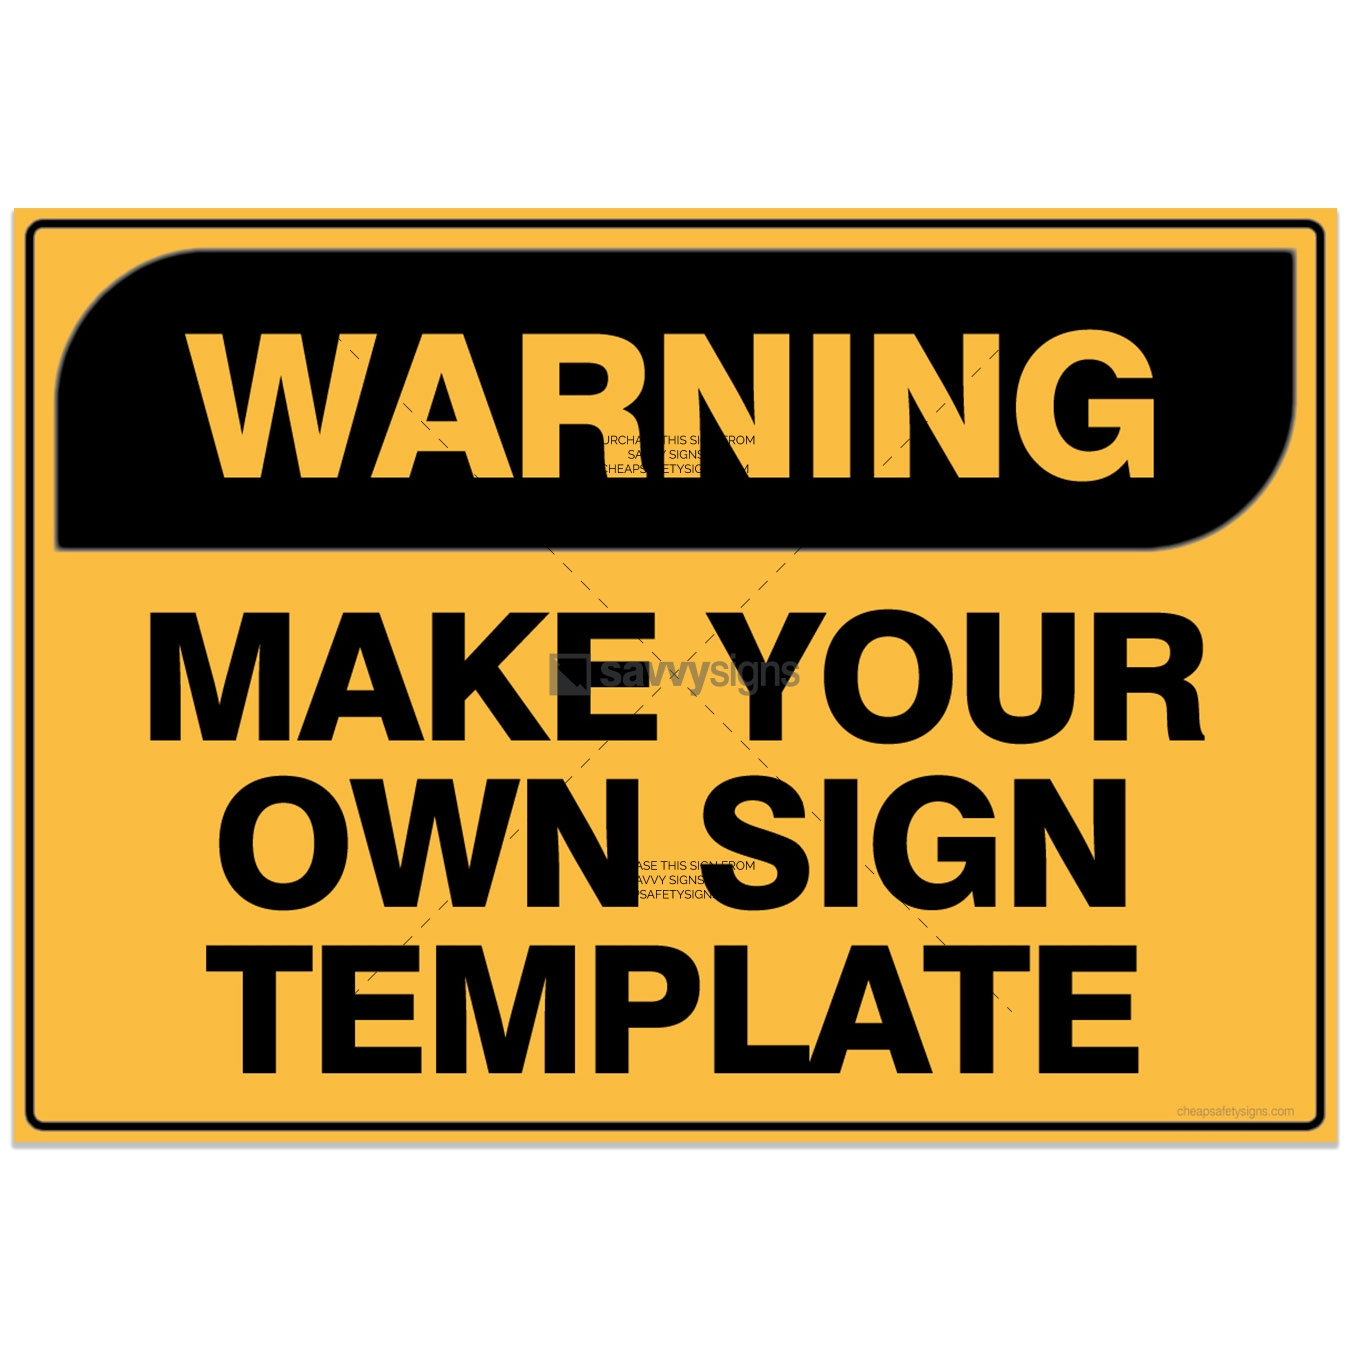 WARNING SIGN make your own sign template by savvy signs